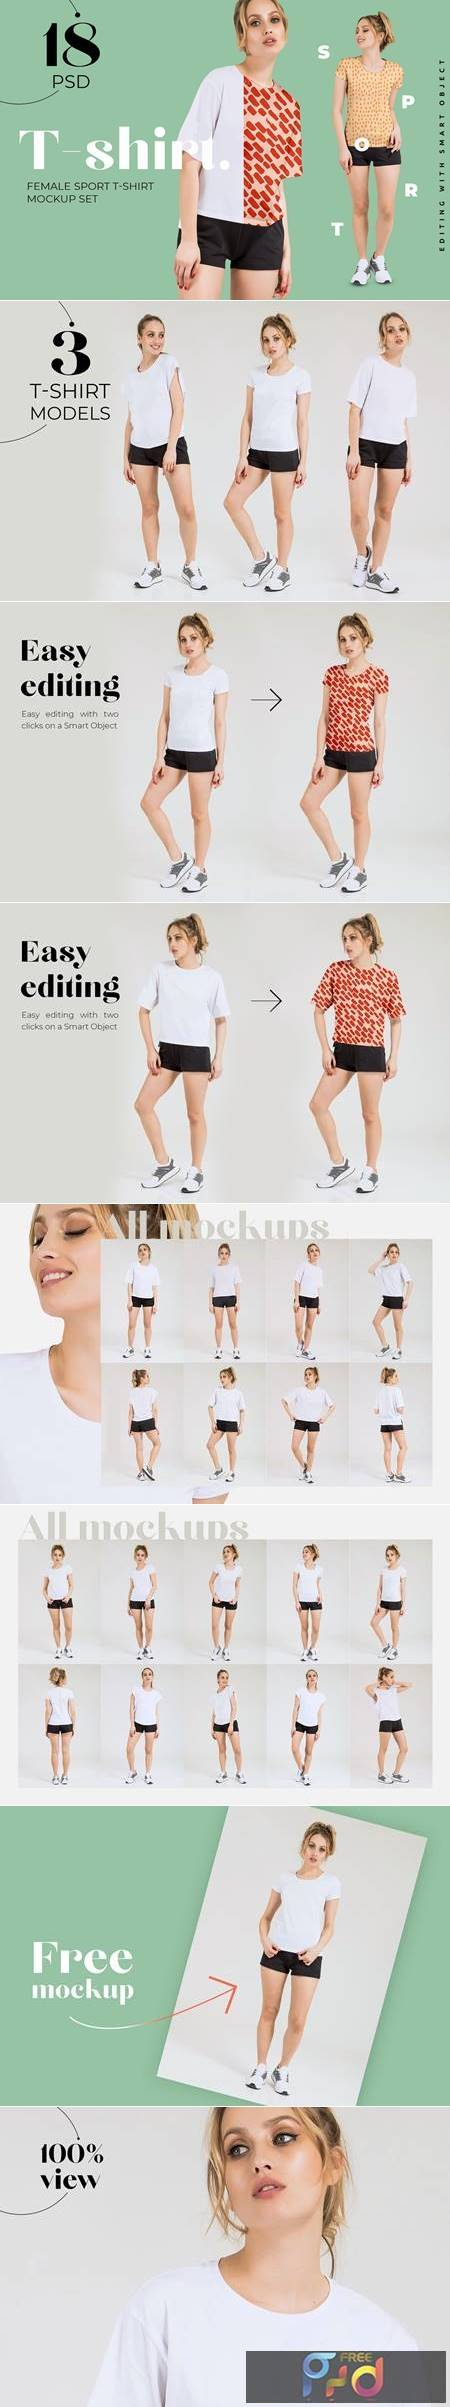 Female Sport T-shirt Mockups Set 4809123 1